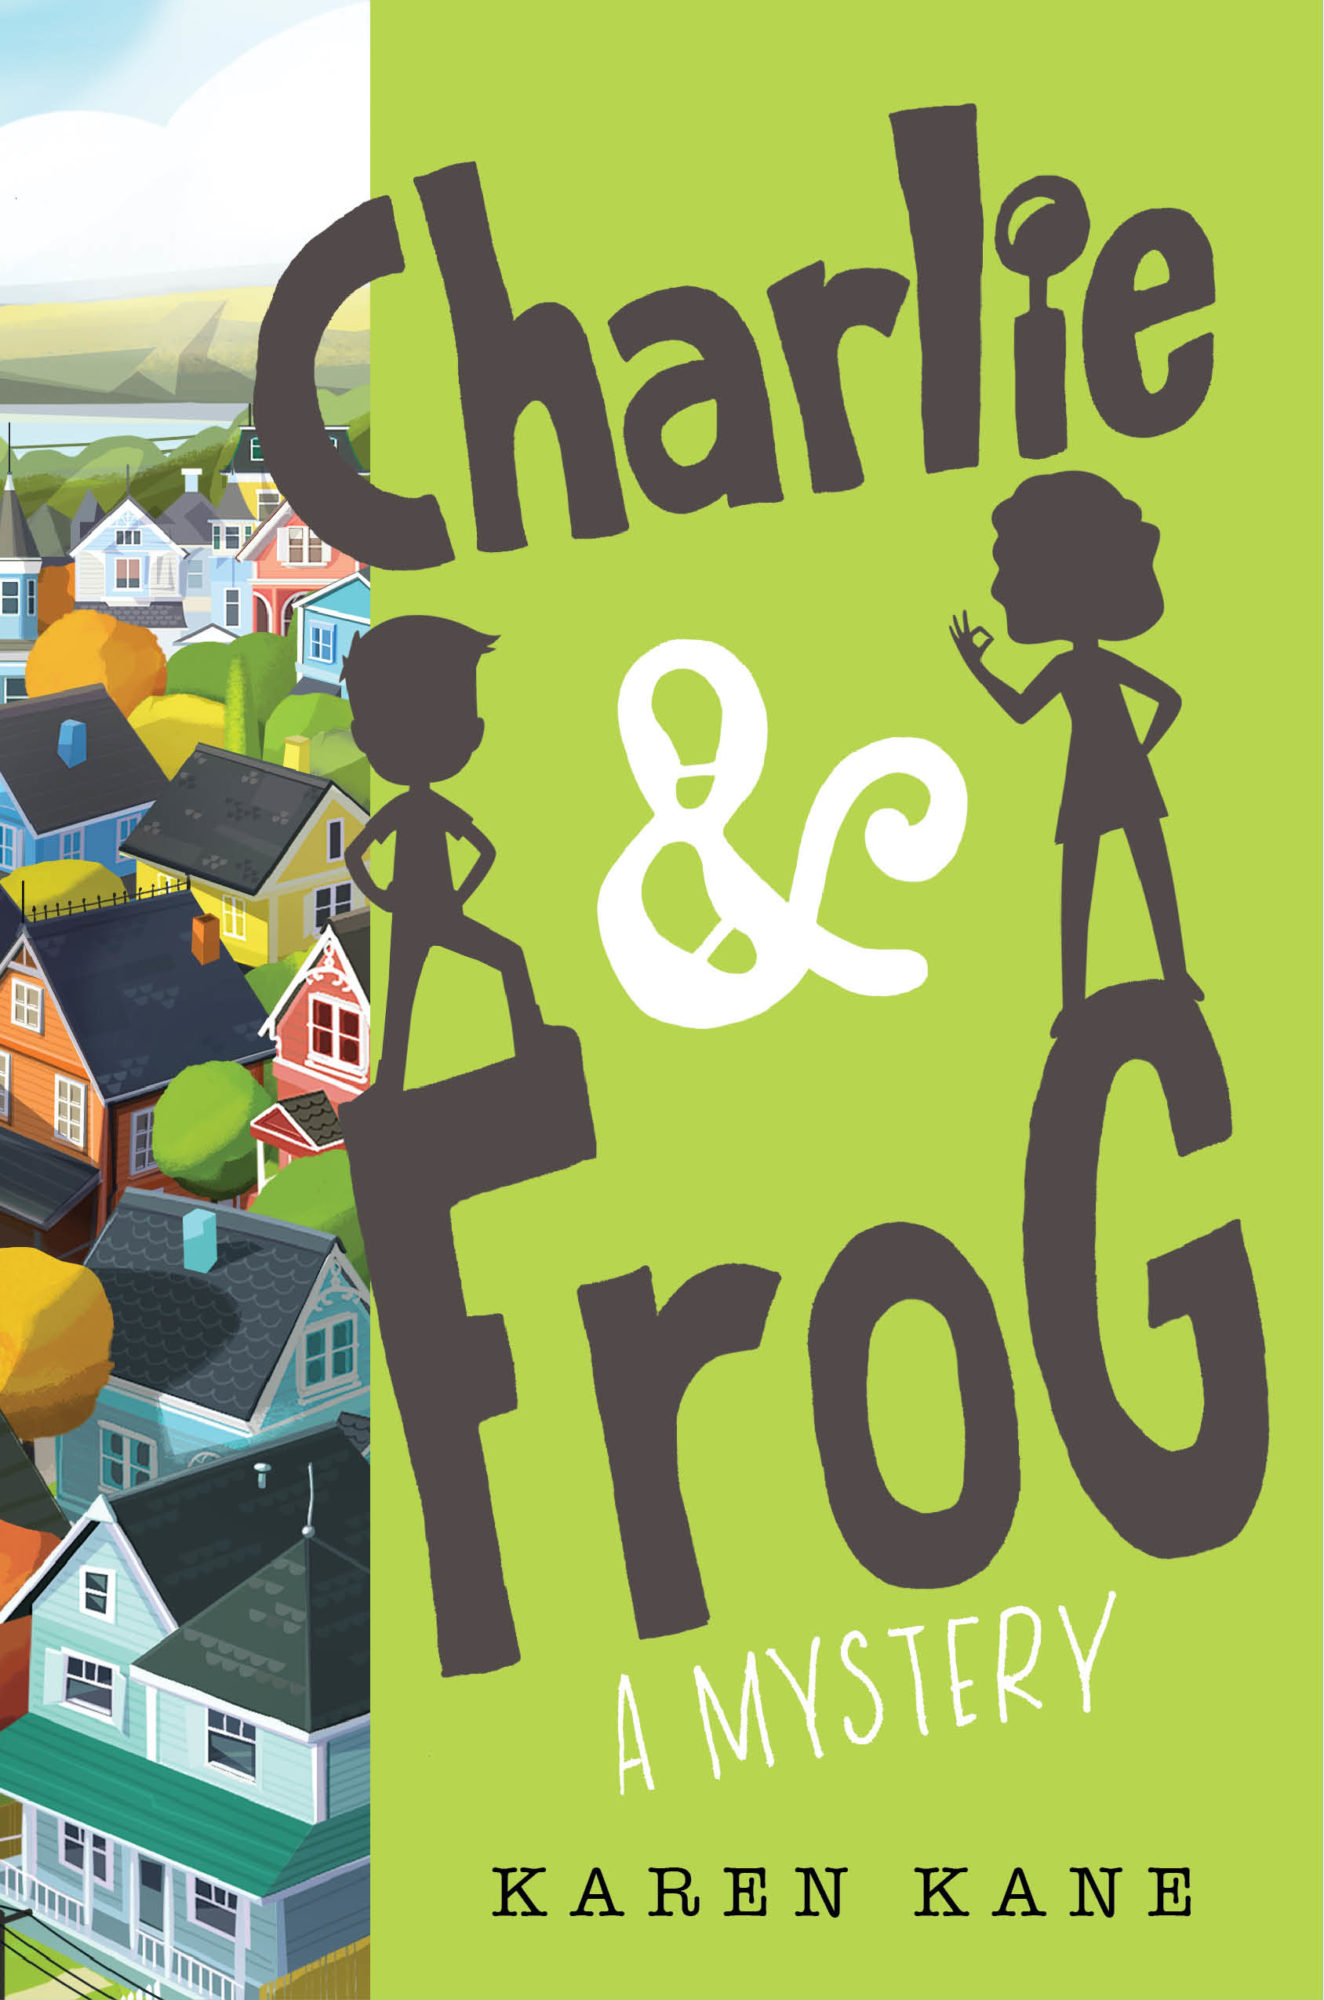 Charlie & Frog Children's Mystery Book